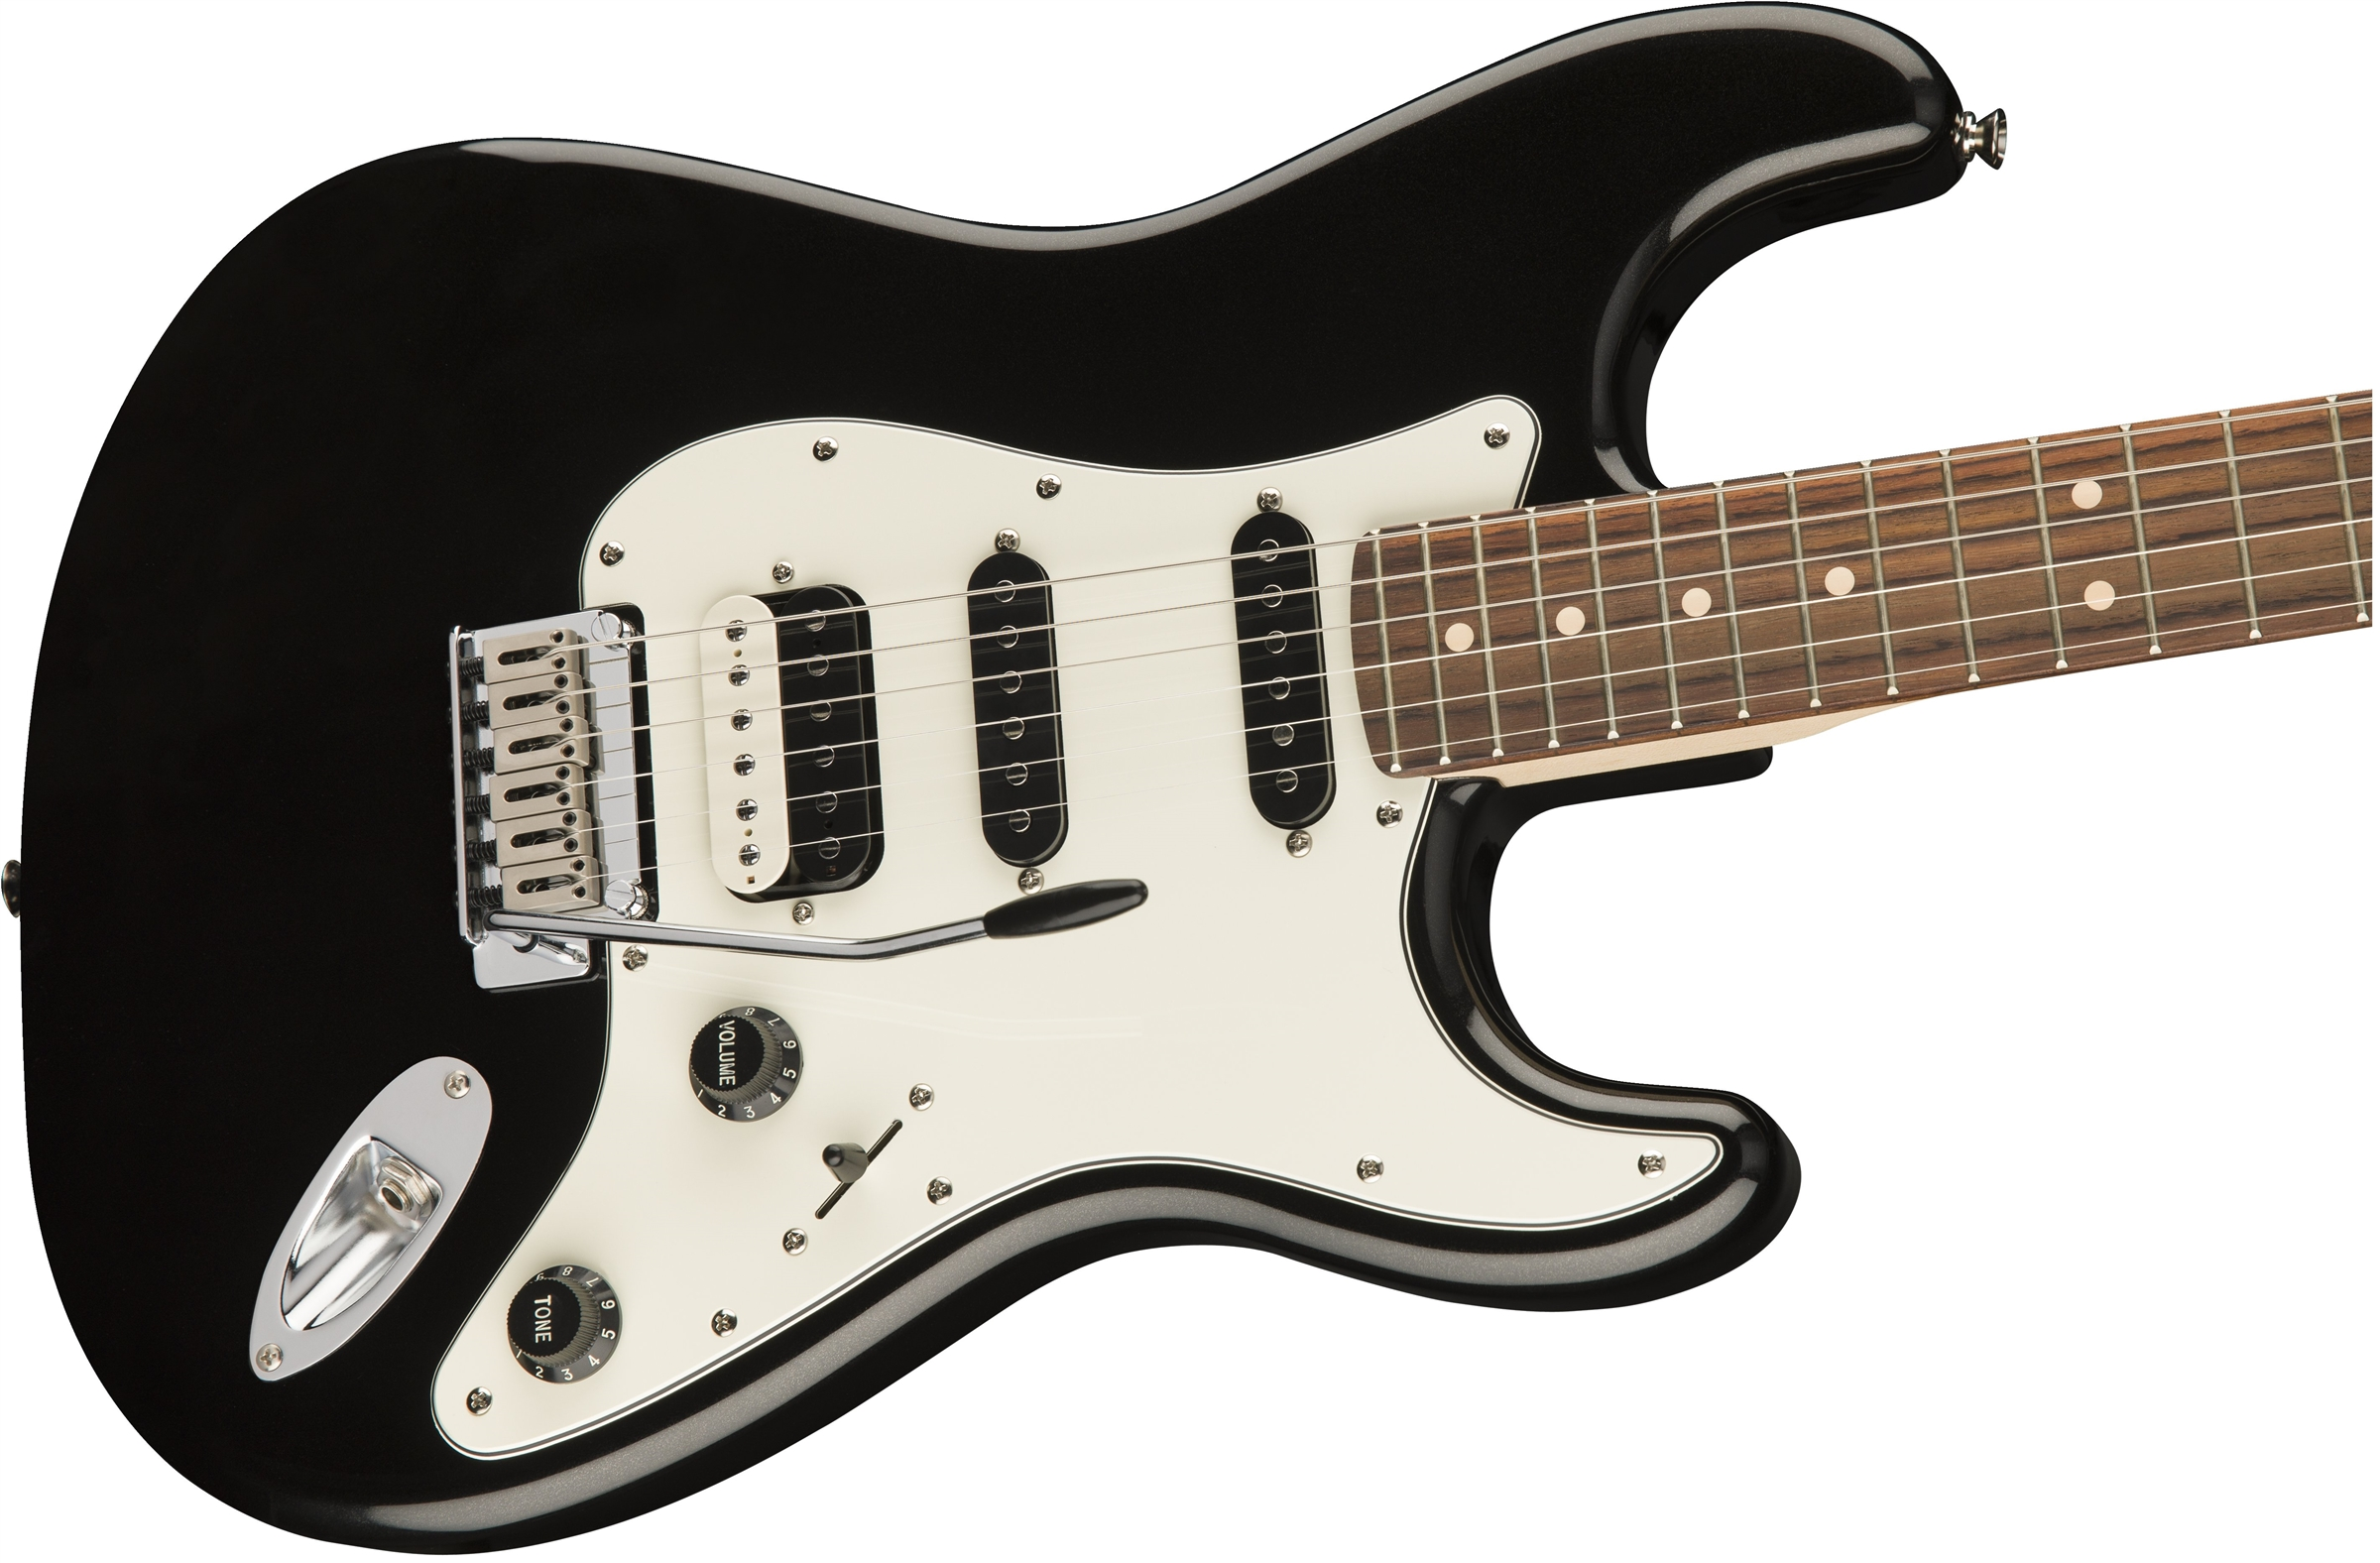 Tremendous Contemporary Stratocaster Hss Squier Electric Guitars Wiring Cloud Domeilariaidewilluminateatxorg